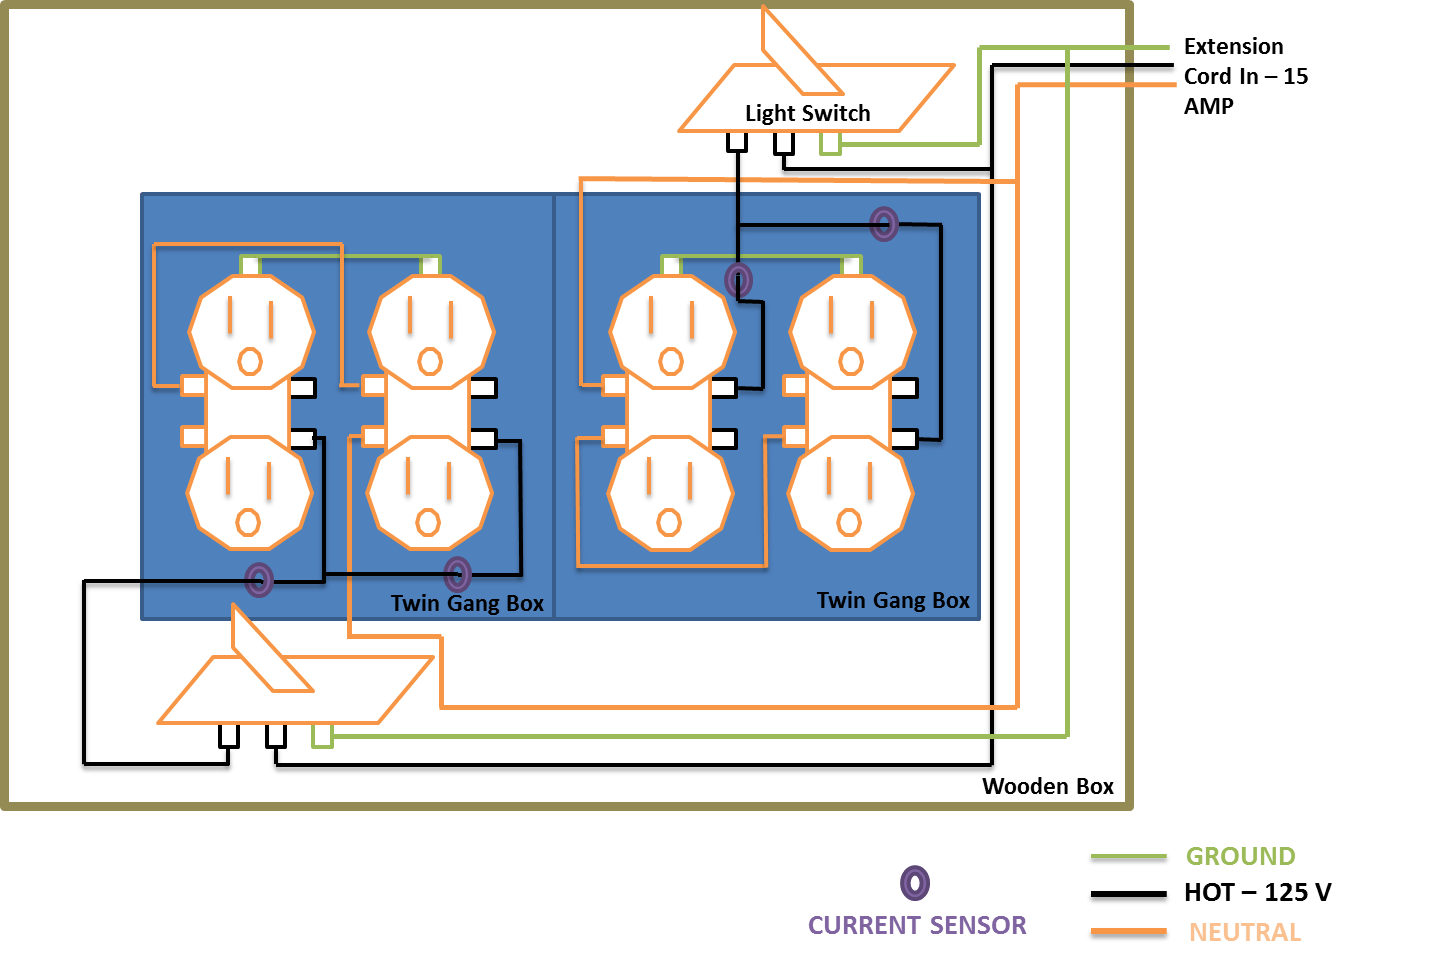 hight resolution of wiring diagrams for outlets not shown in the diagram